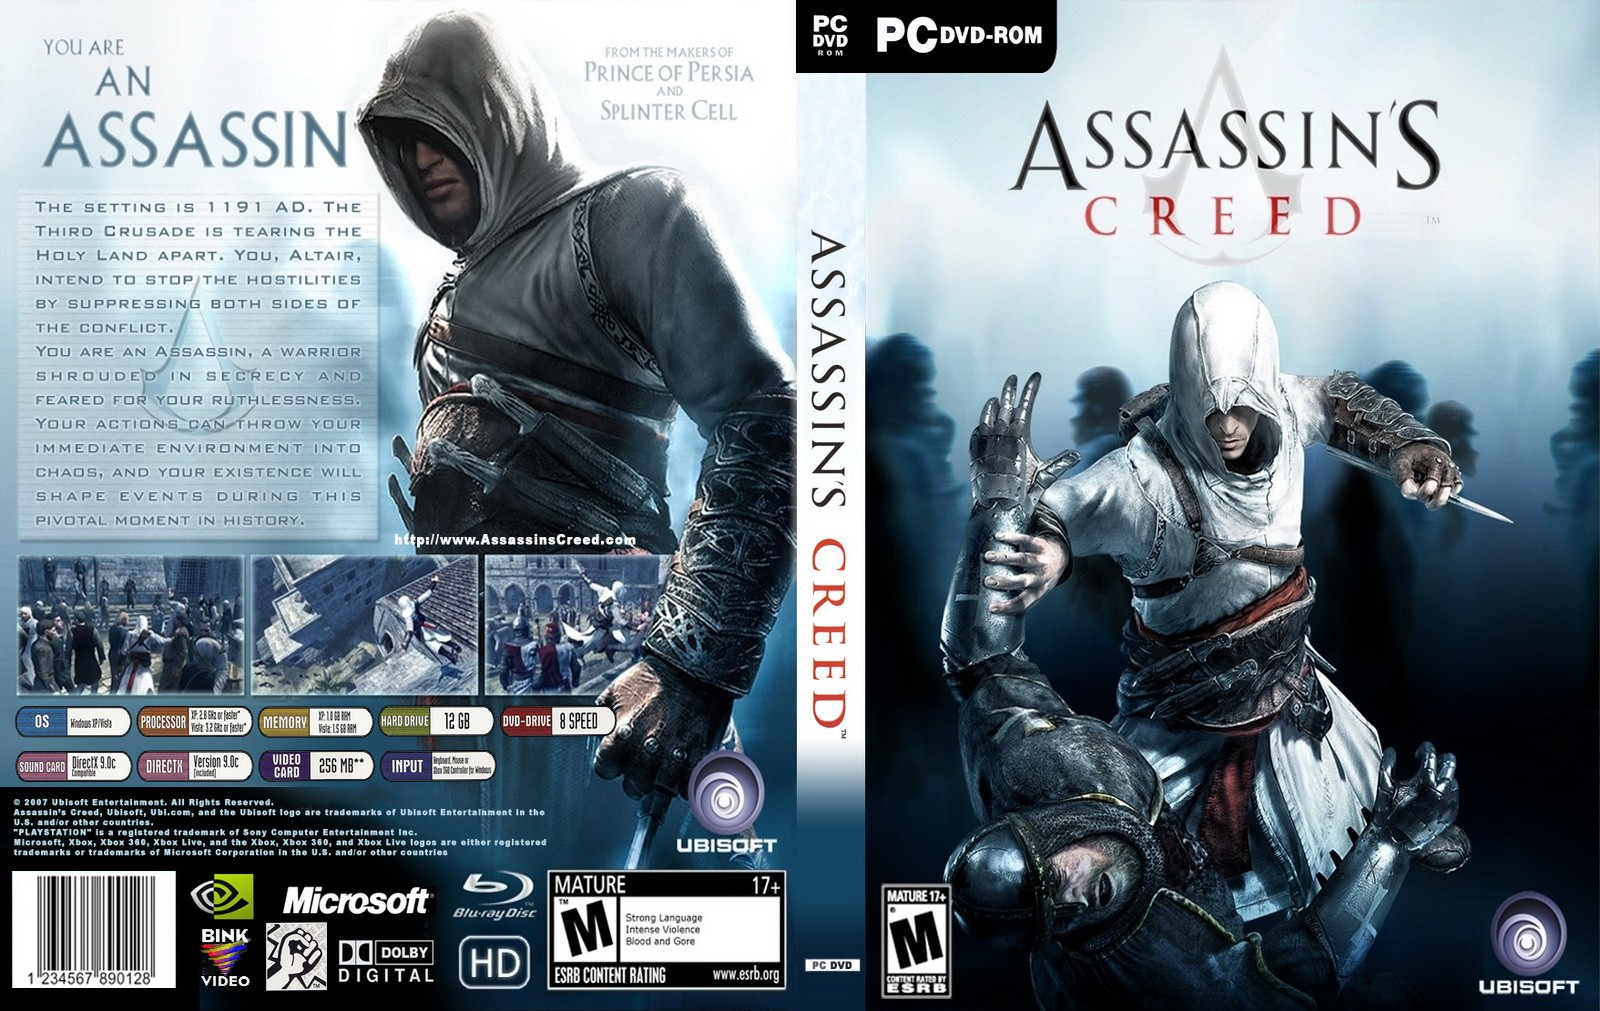 assassin s creed pc game - Pokemon Go Search for: tips ...